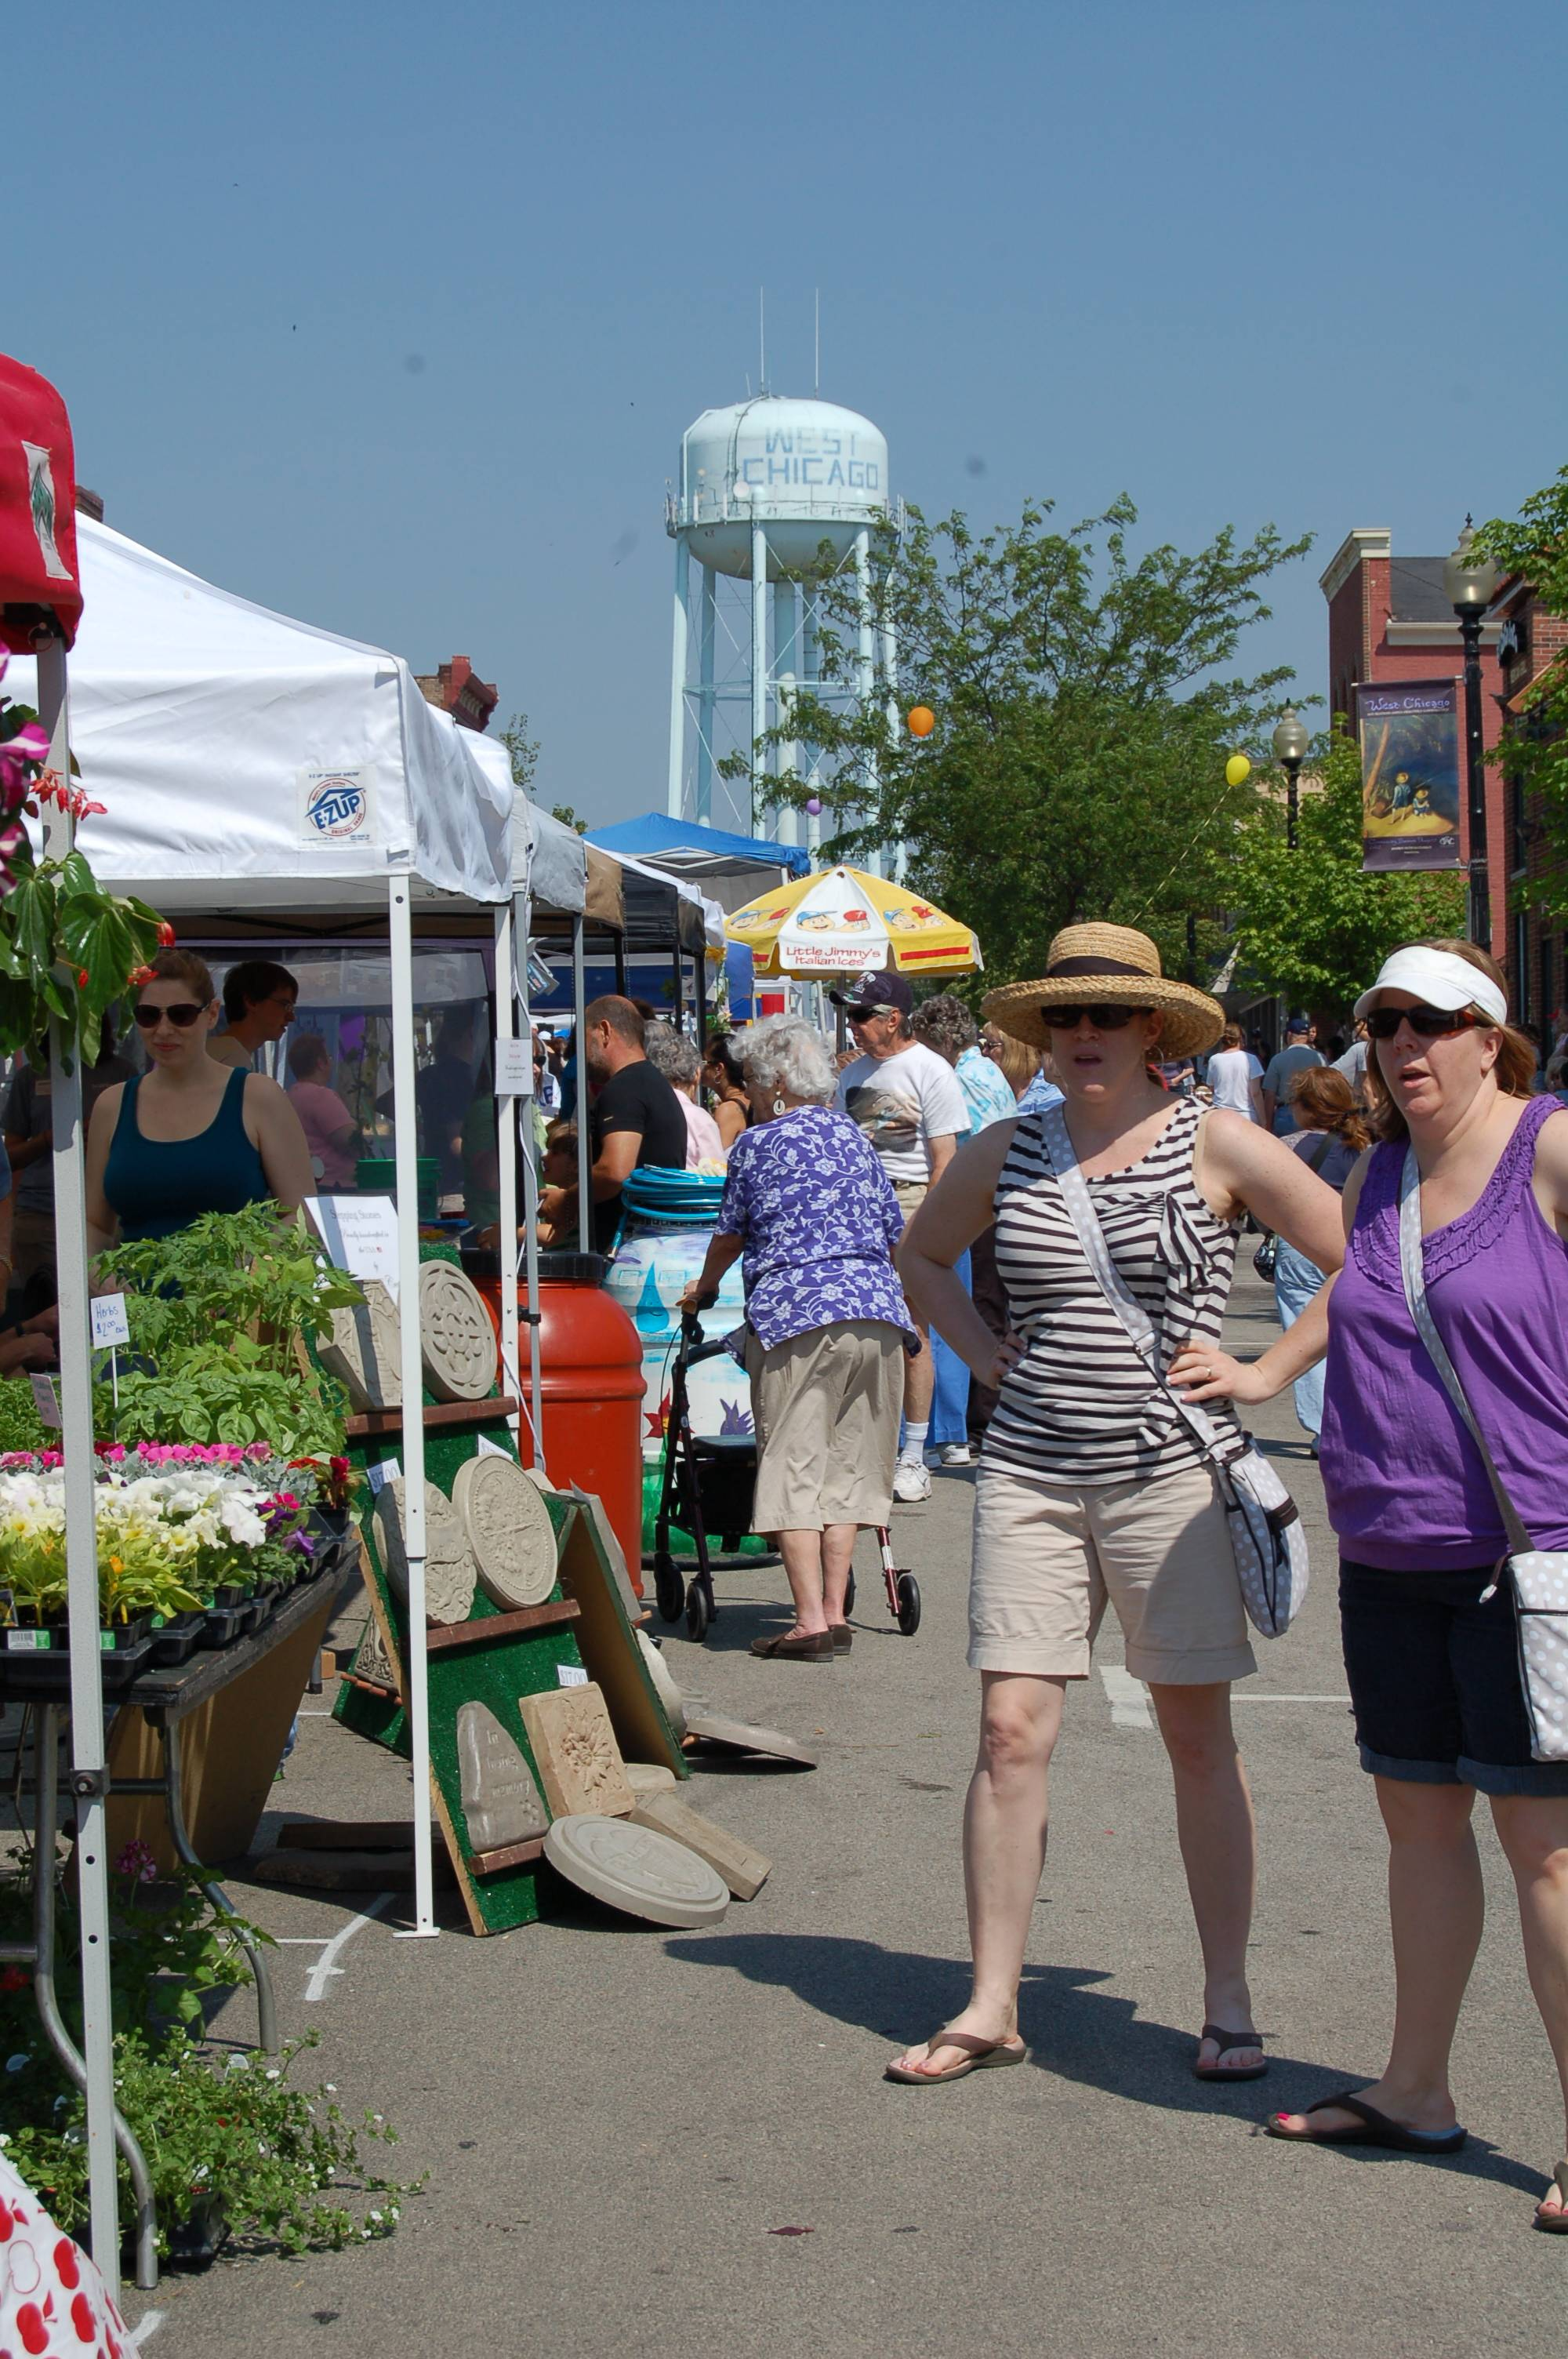 Vendors lined the streets of the historic downtown district during West Chicago's Blooming Fest in 2012.